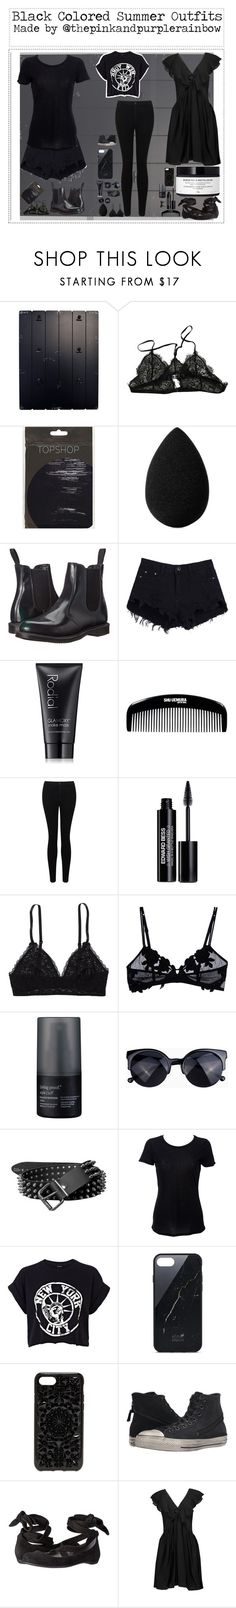 """""""Black Colored Summer Outfits"""" by thepinkandpurplerainbow ❤ liked on Polyvore featuring Anine Bing, beautyblender, Dr. Martens, Rodial, shu uemura, Miss Selfridge, Edward Bess, Aerie, La Perla and Living Proof"""